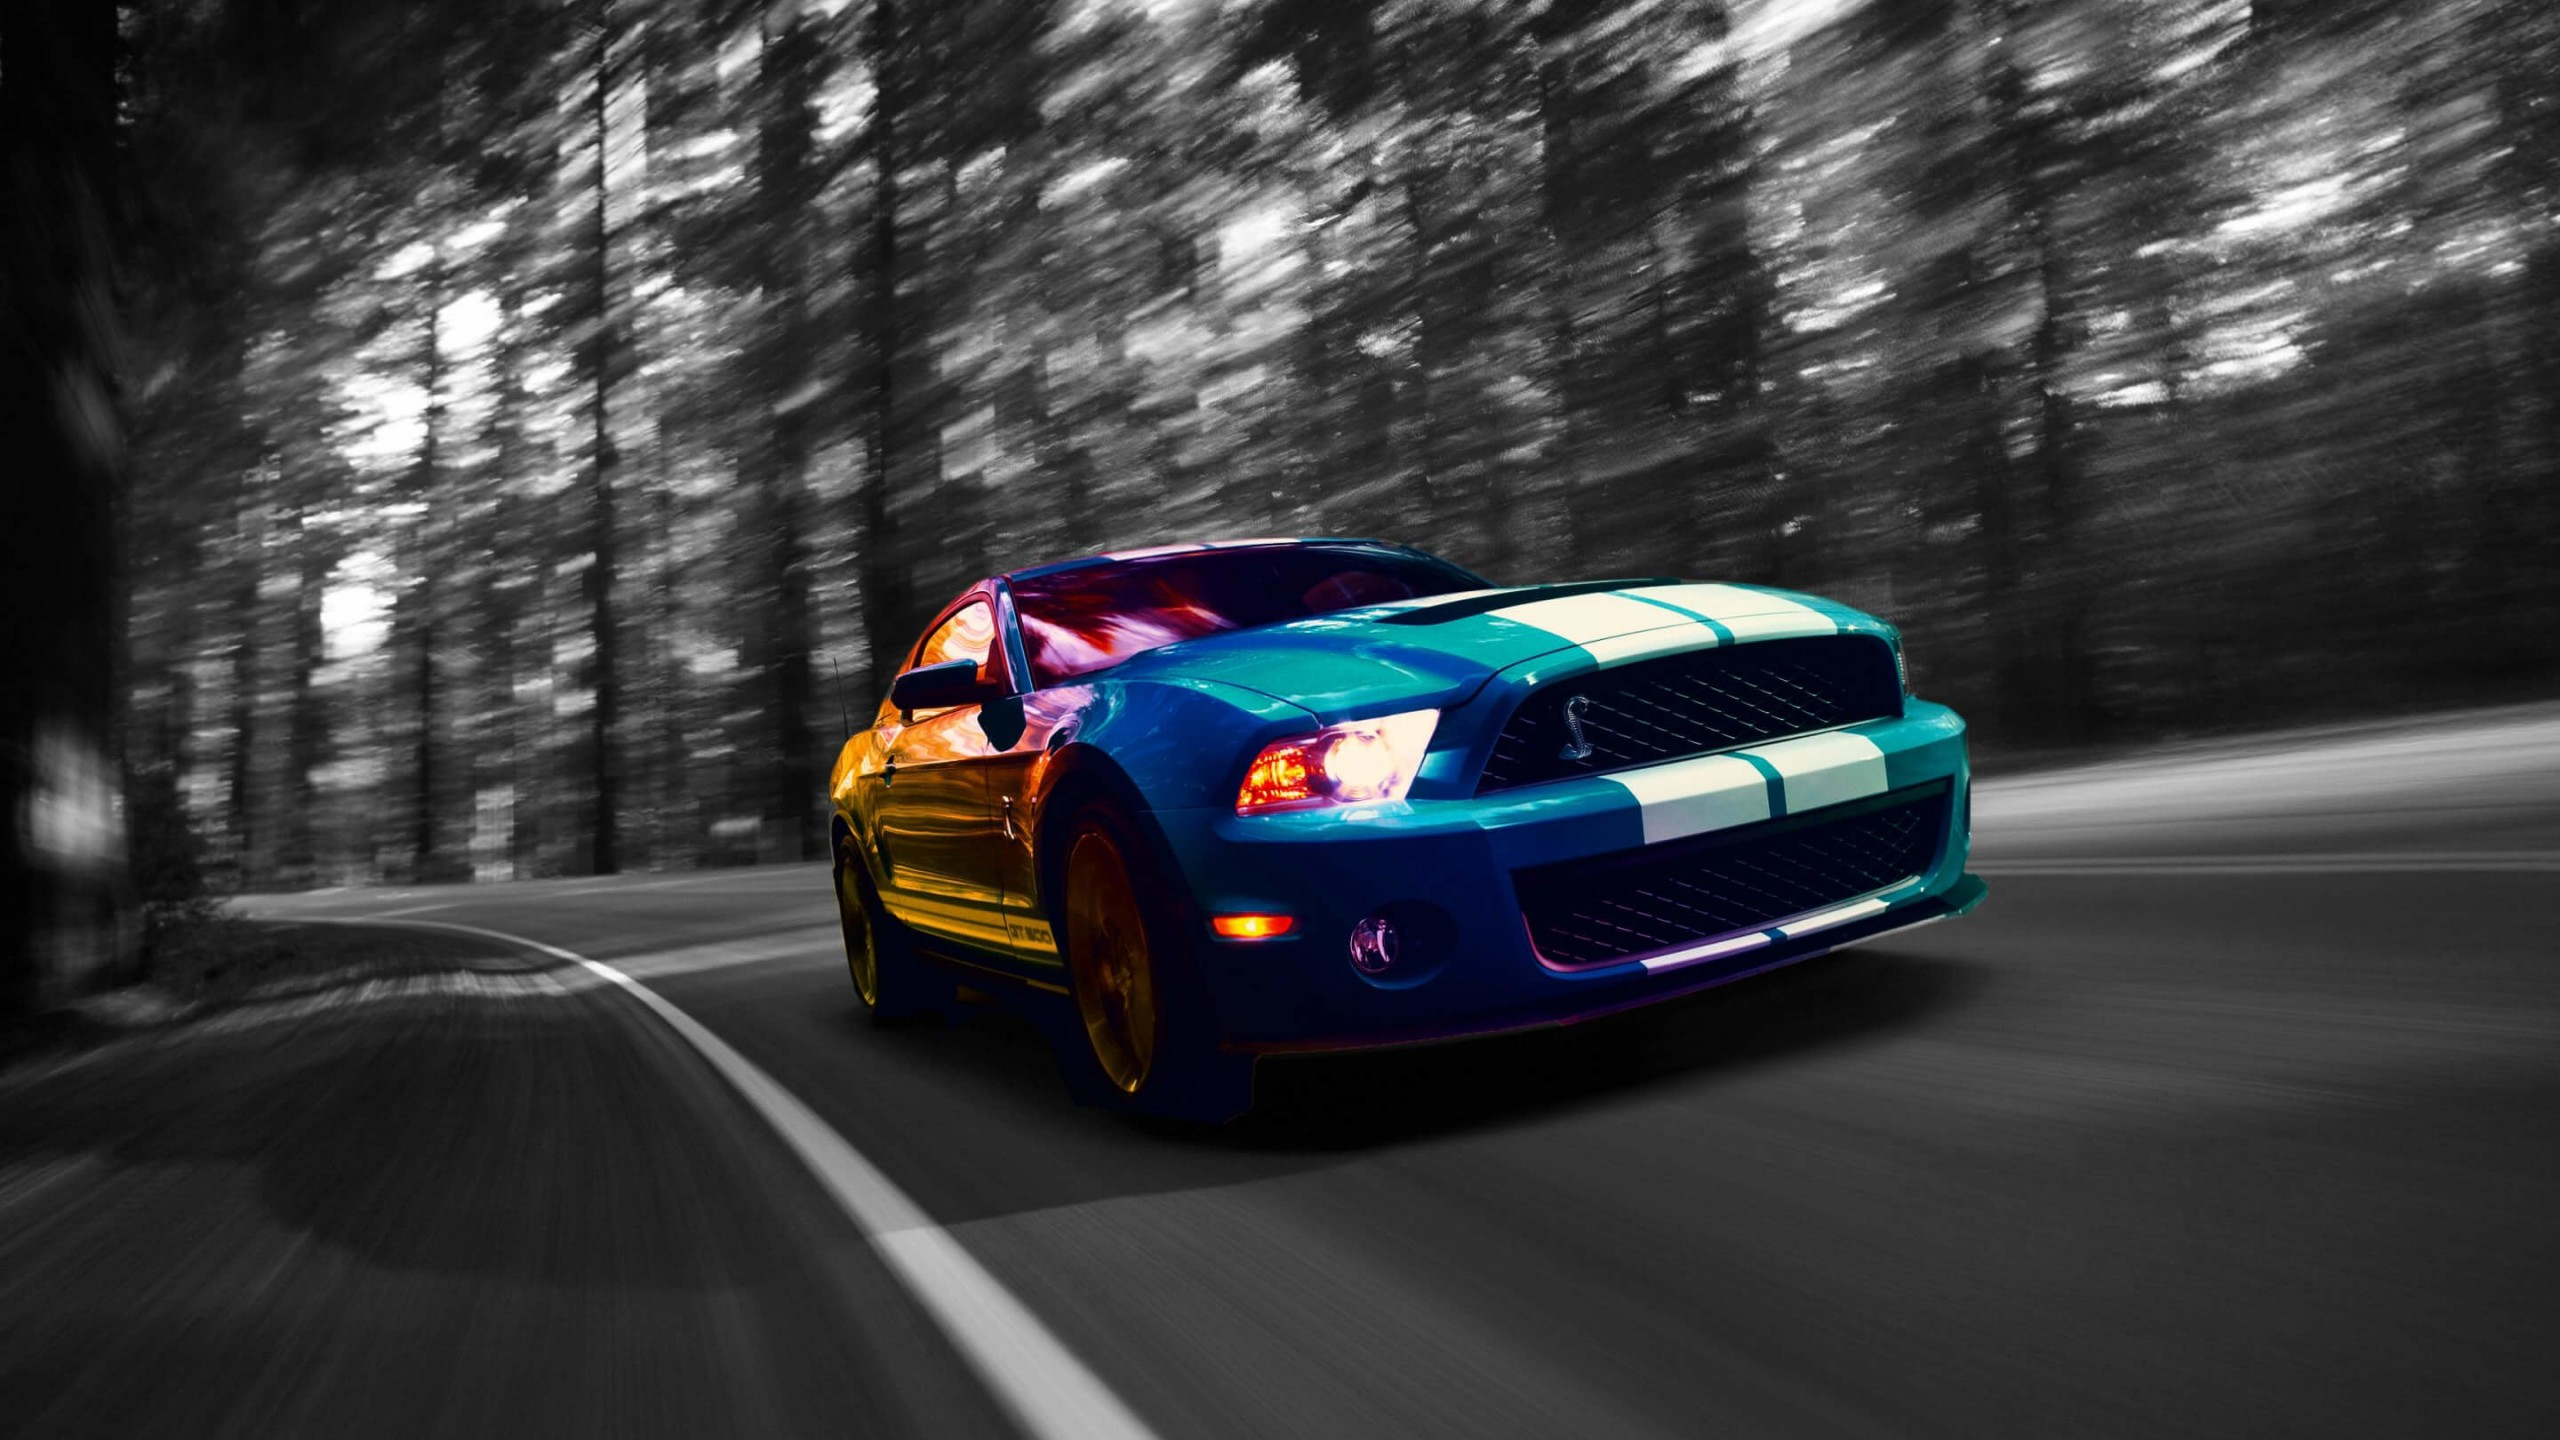 Ford Mustang Shelby GT500 Wallpaper for Social Media YouTube Channel Art